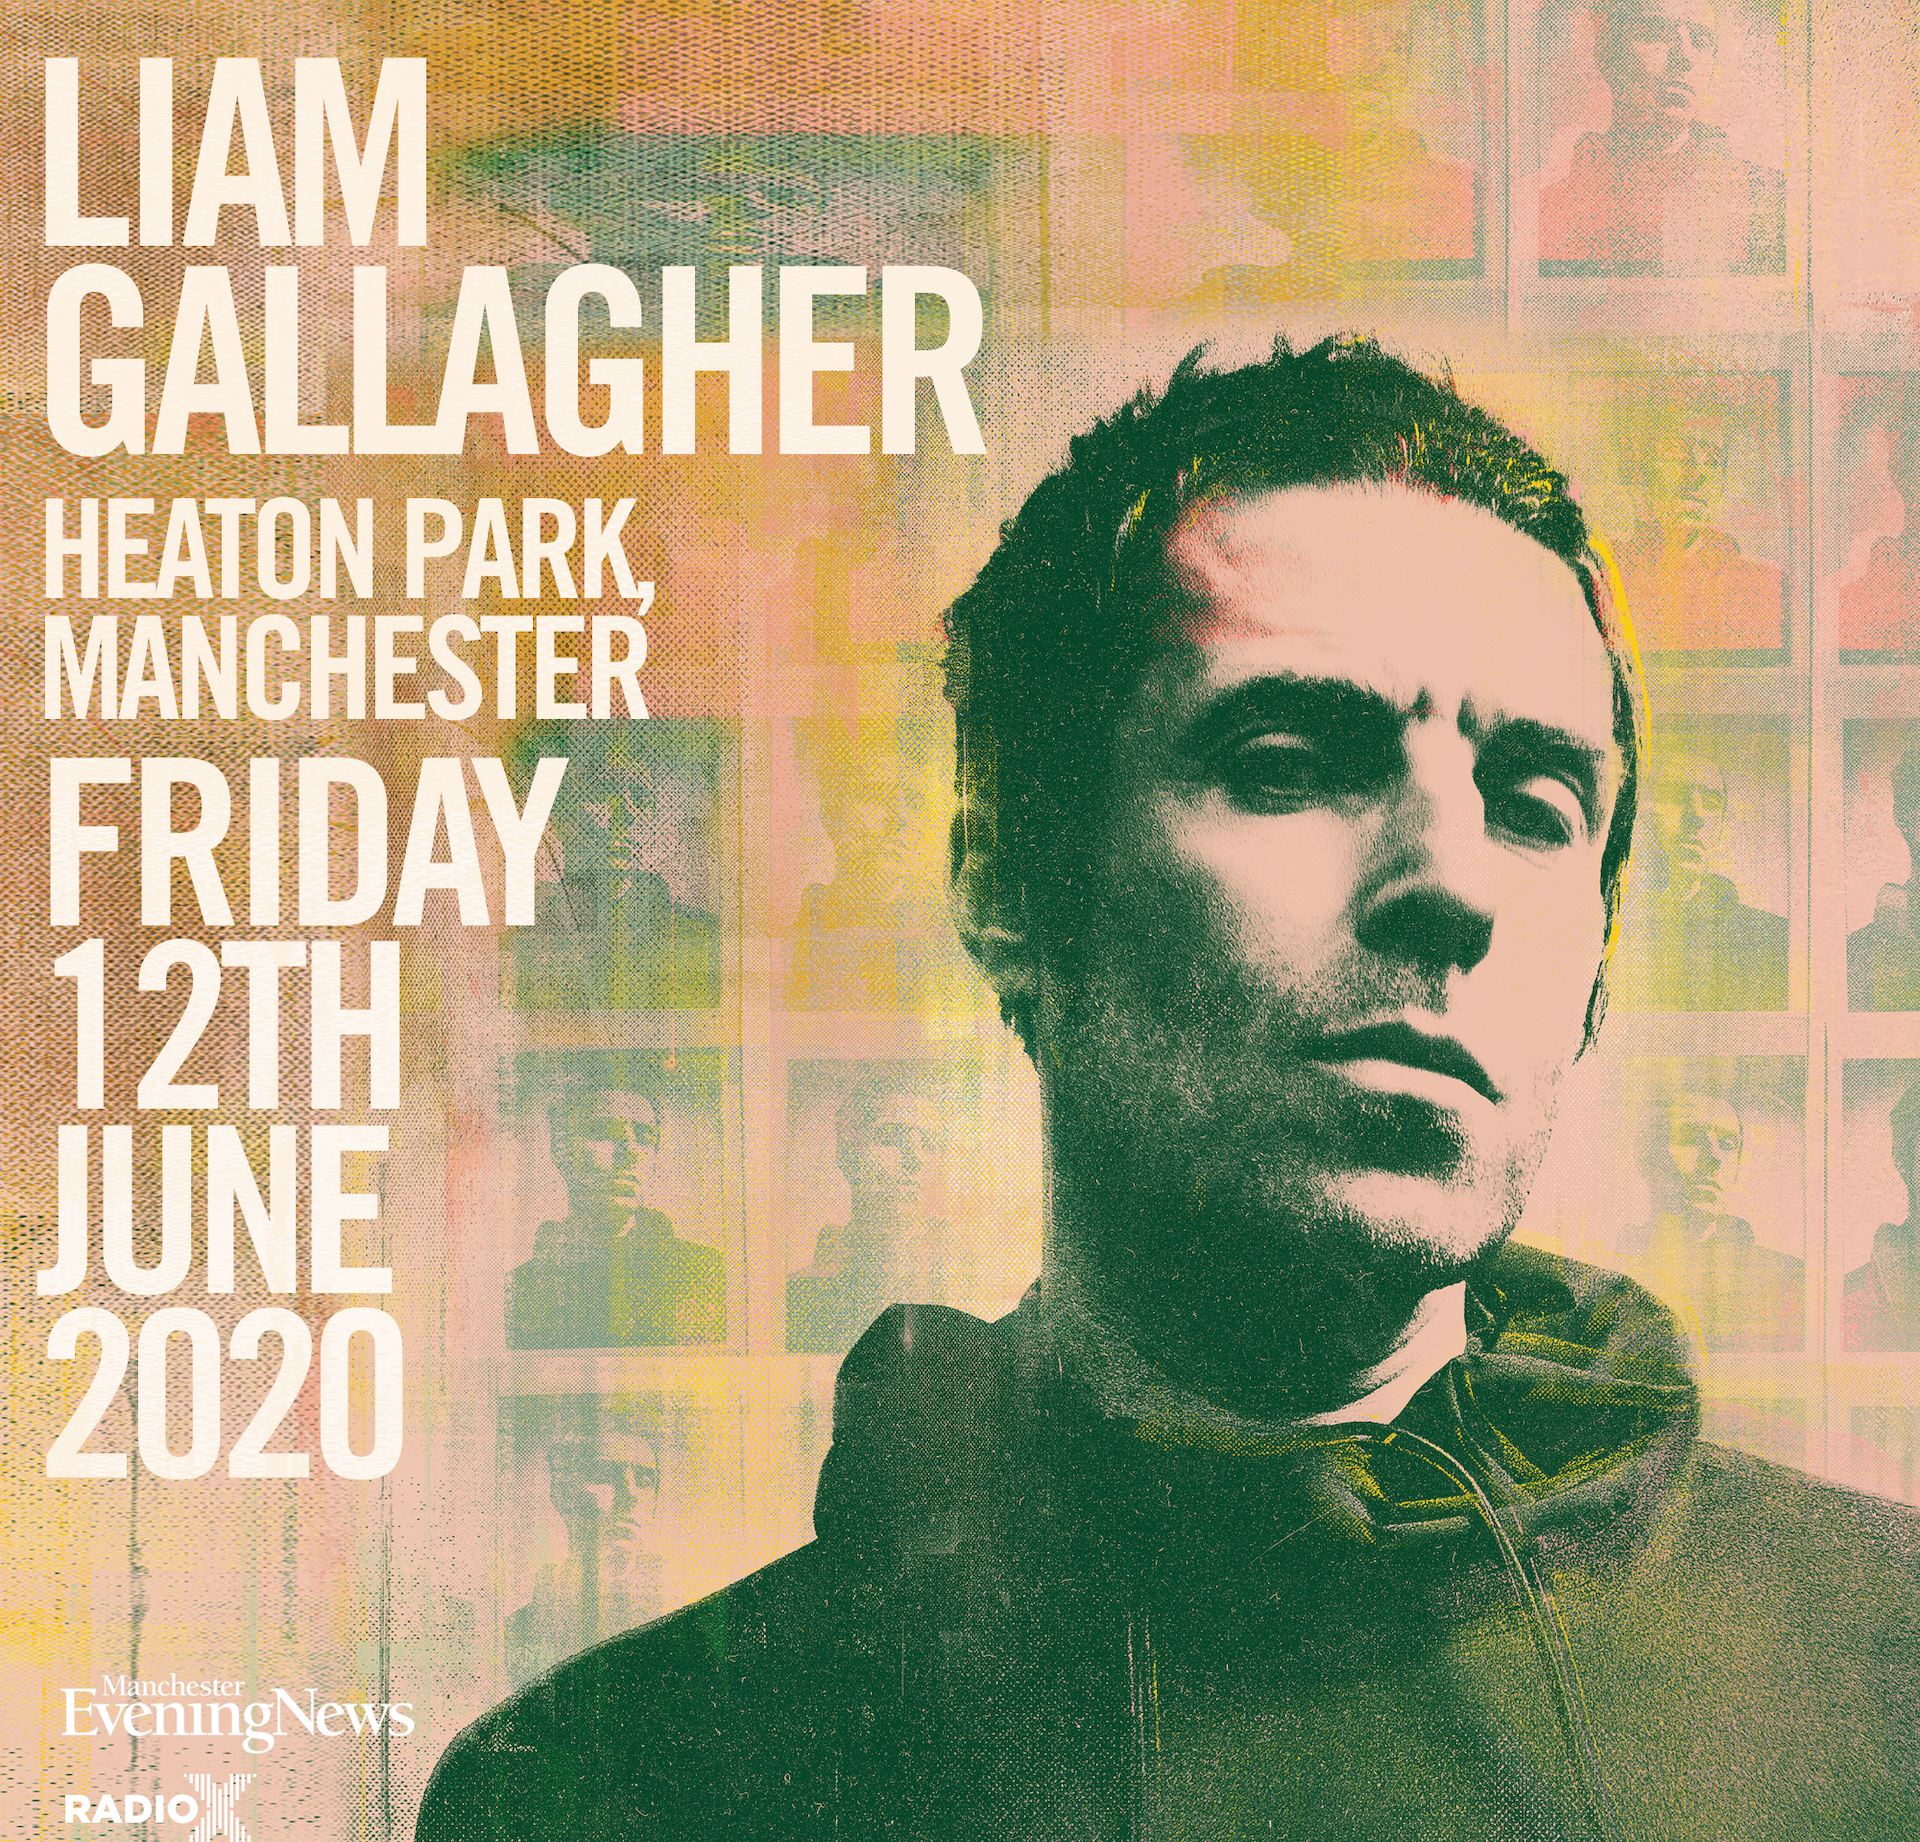 Best Selling Albums Of 2020.Liam Gallagher To Play Huge 2020 Homecoming Show In